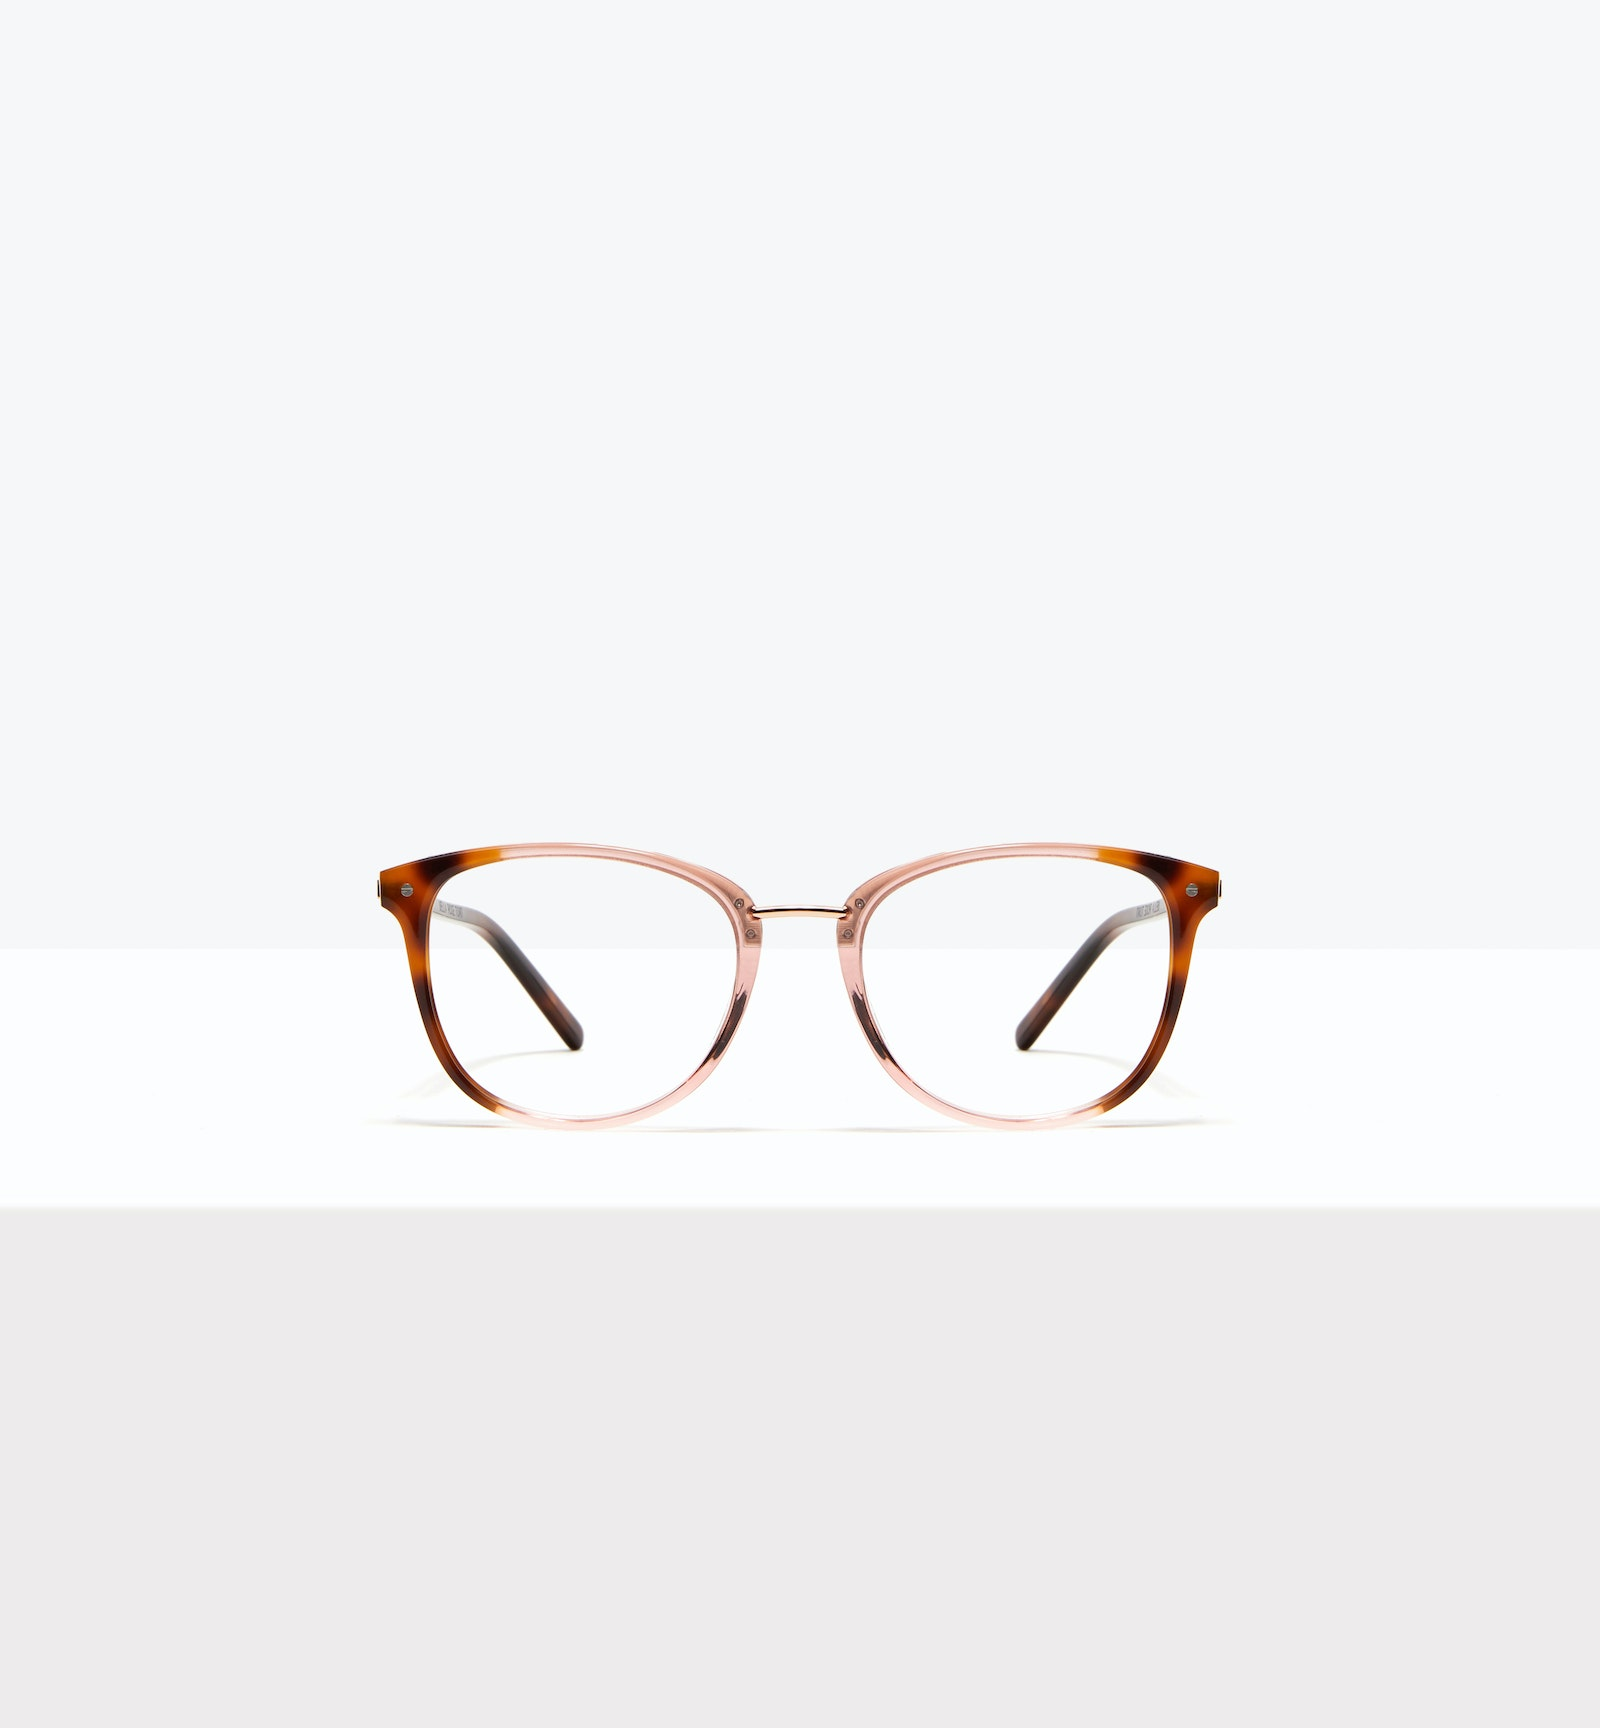 Affordable Fashion Glasses Square Round Eyeglasses Women Bella Rose Tort